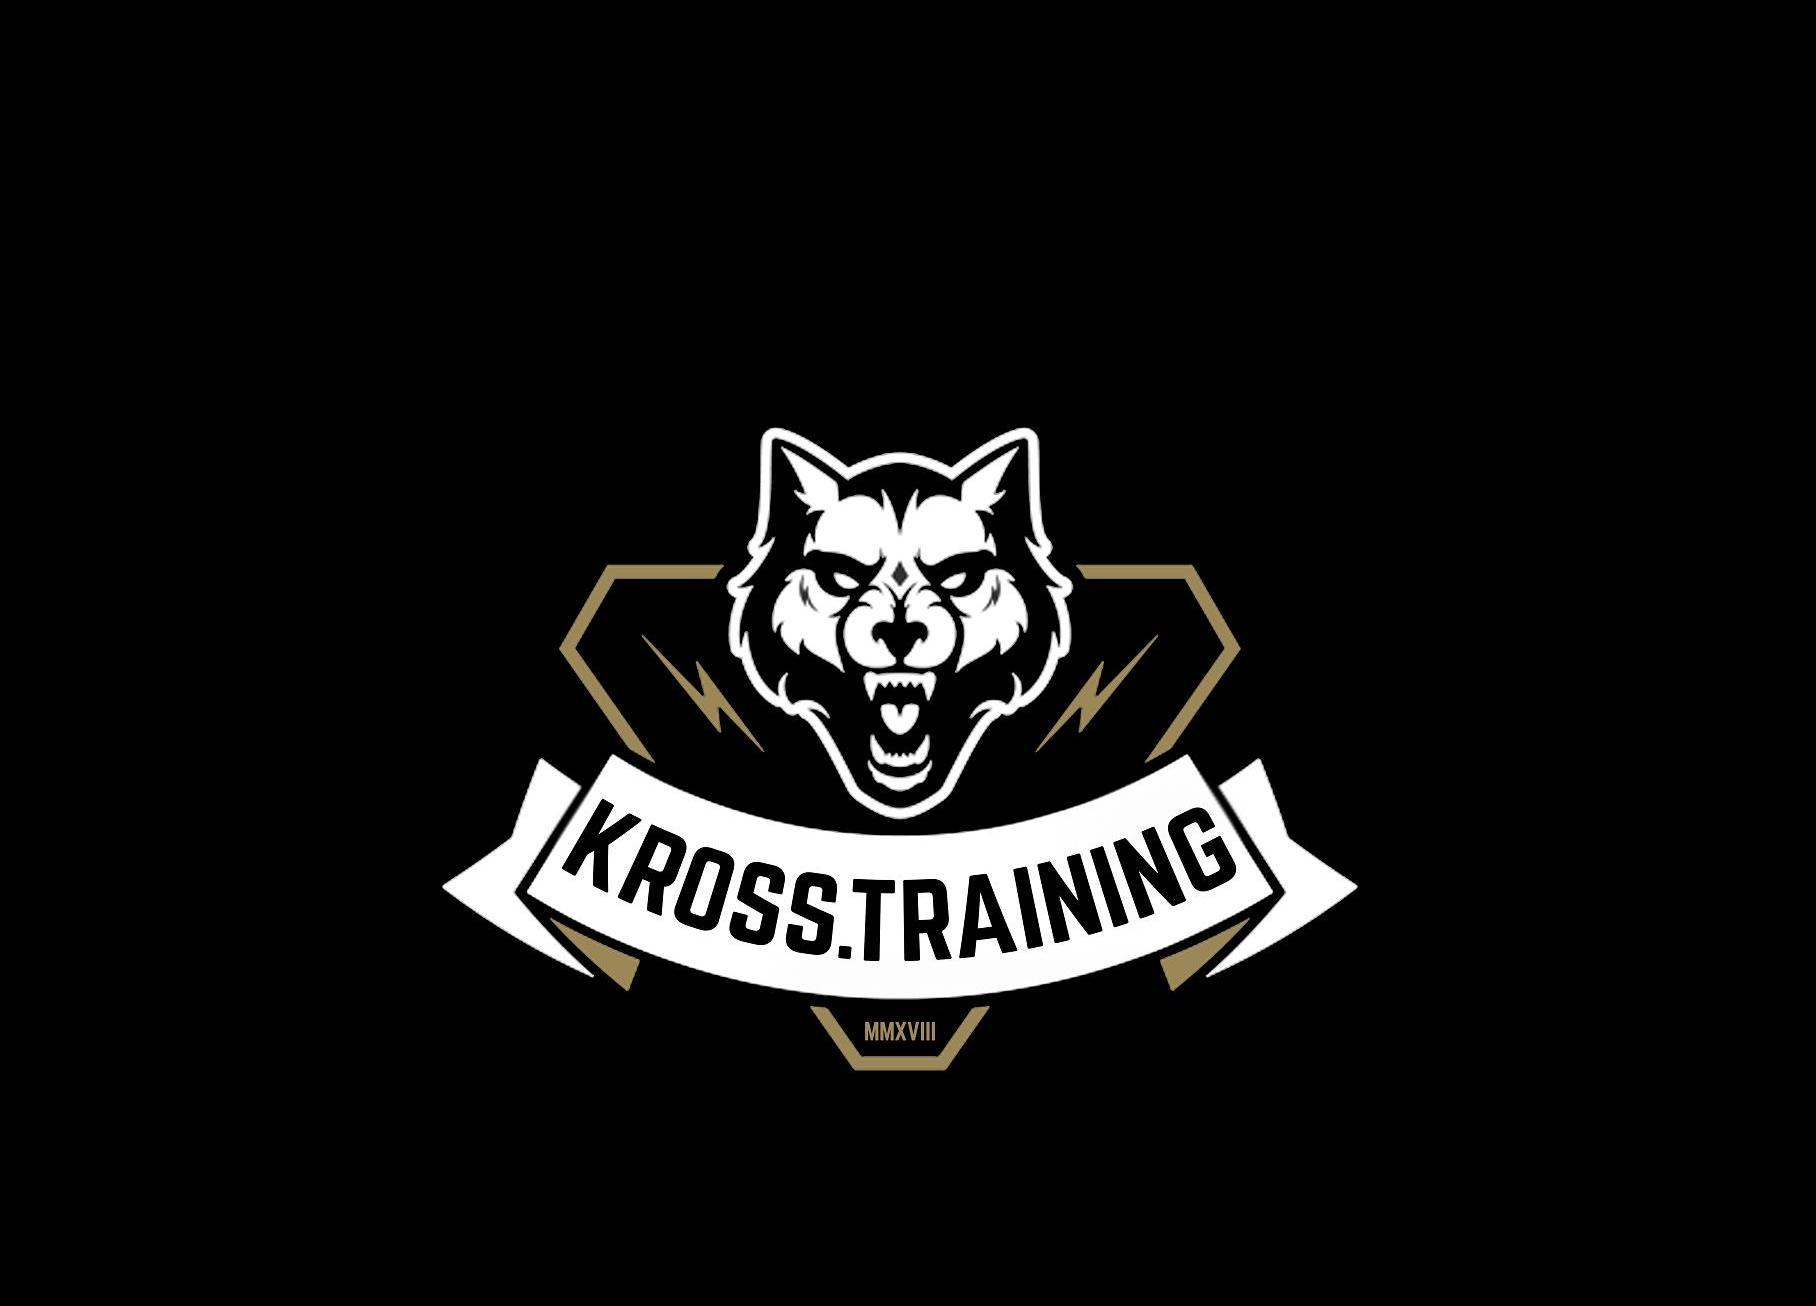 KROSS.TRAINING